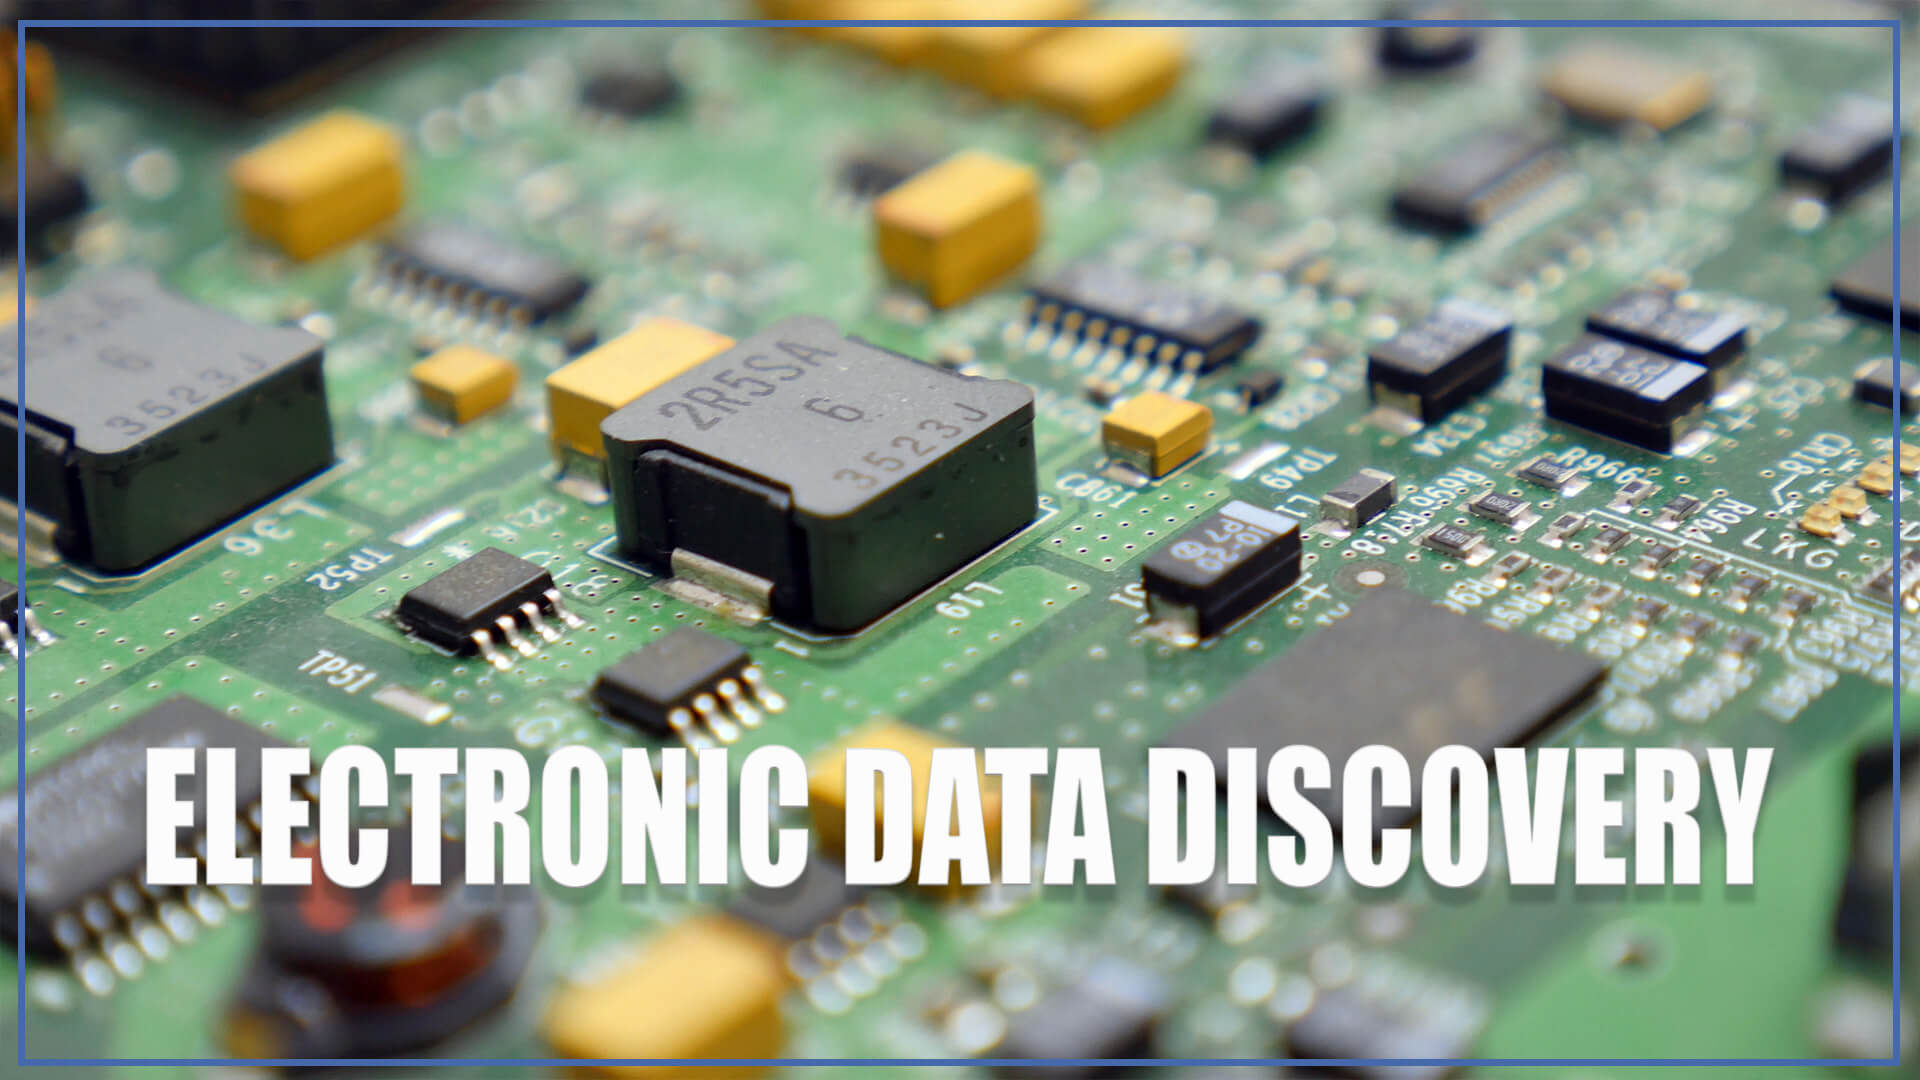 Electronic Data Discovery